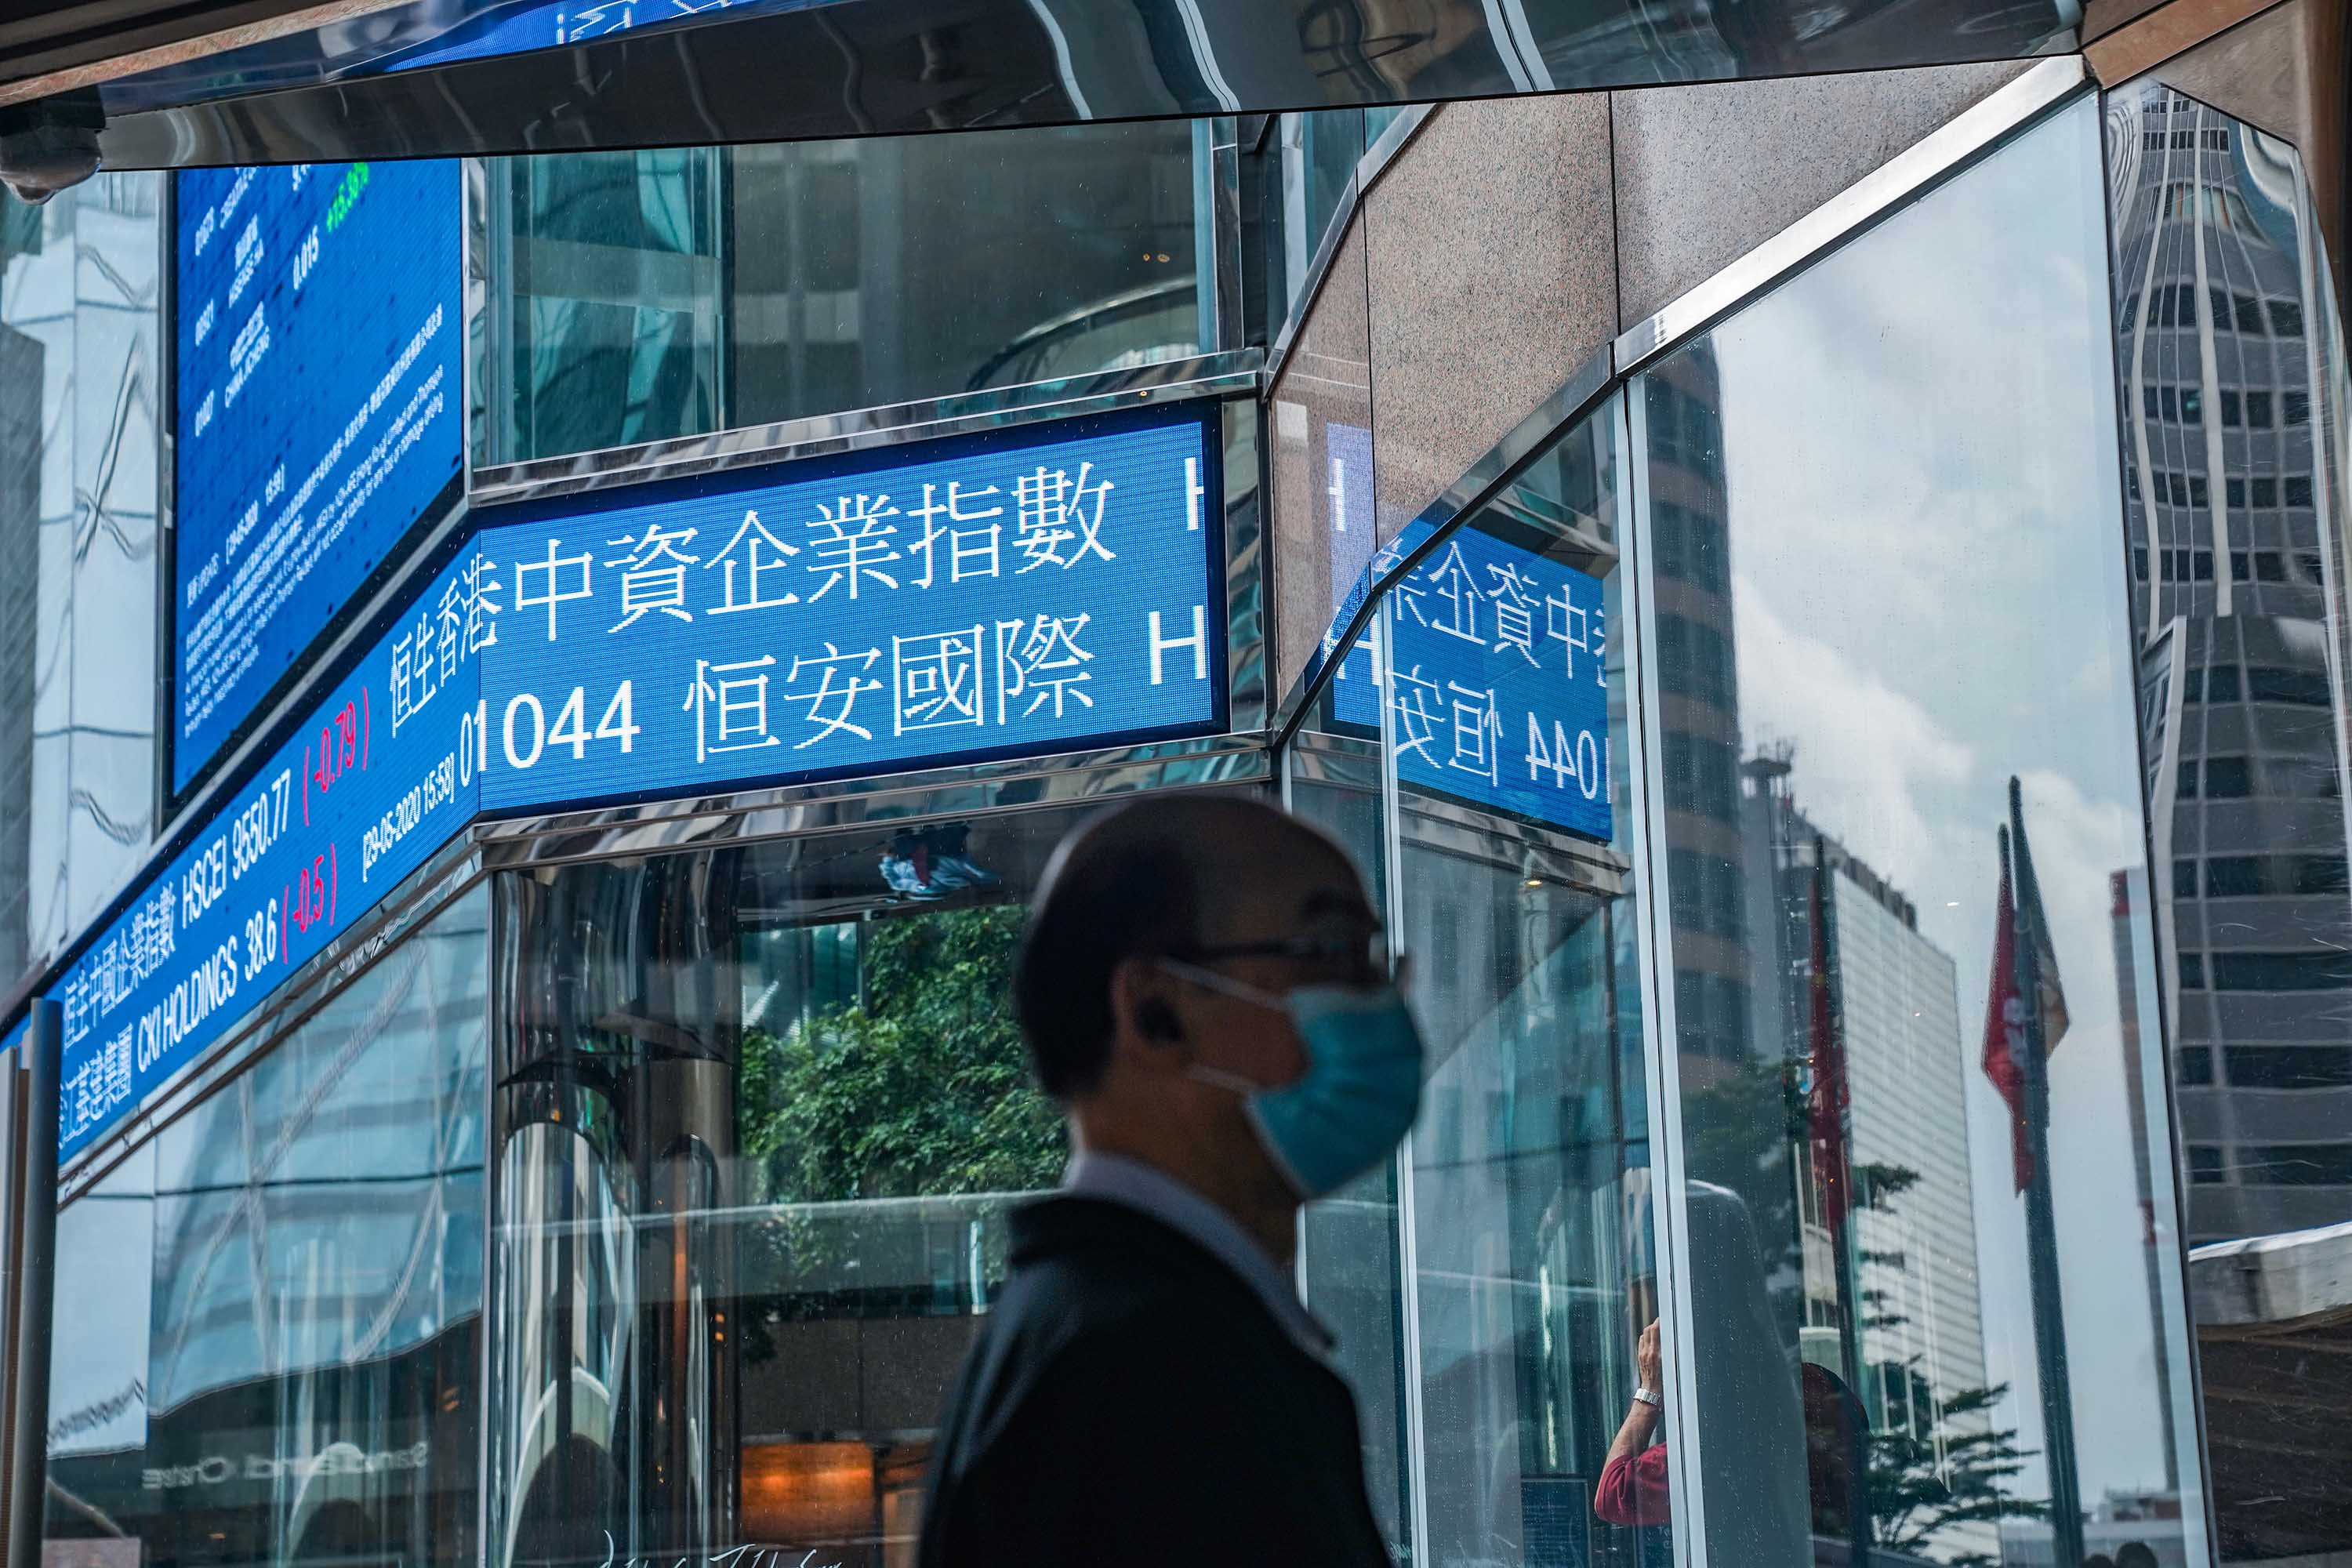 A pedestrian walks past a stock ticker at the Exchange Square complex, which houses the Hong Kong Stock Exchange, in Hong Kong on May 29.